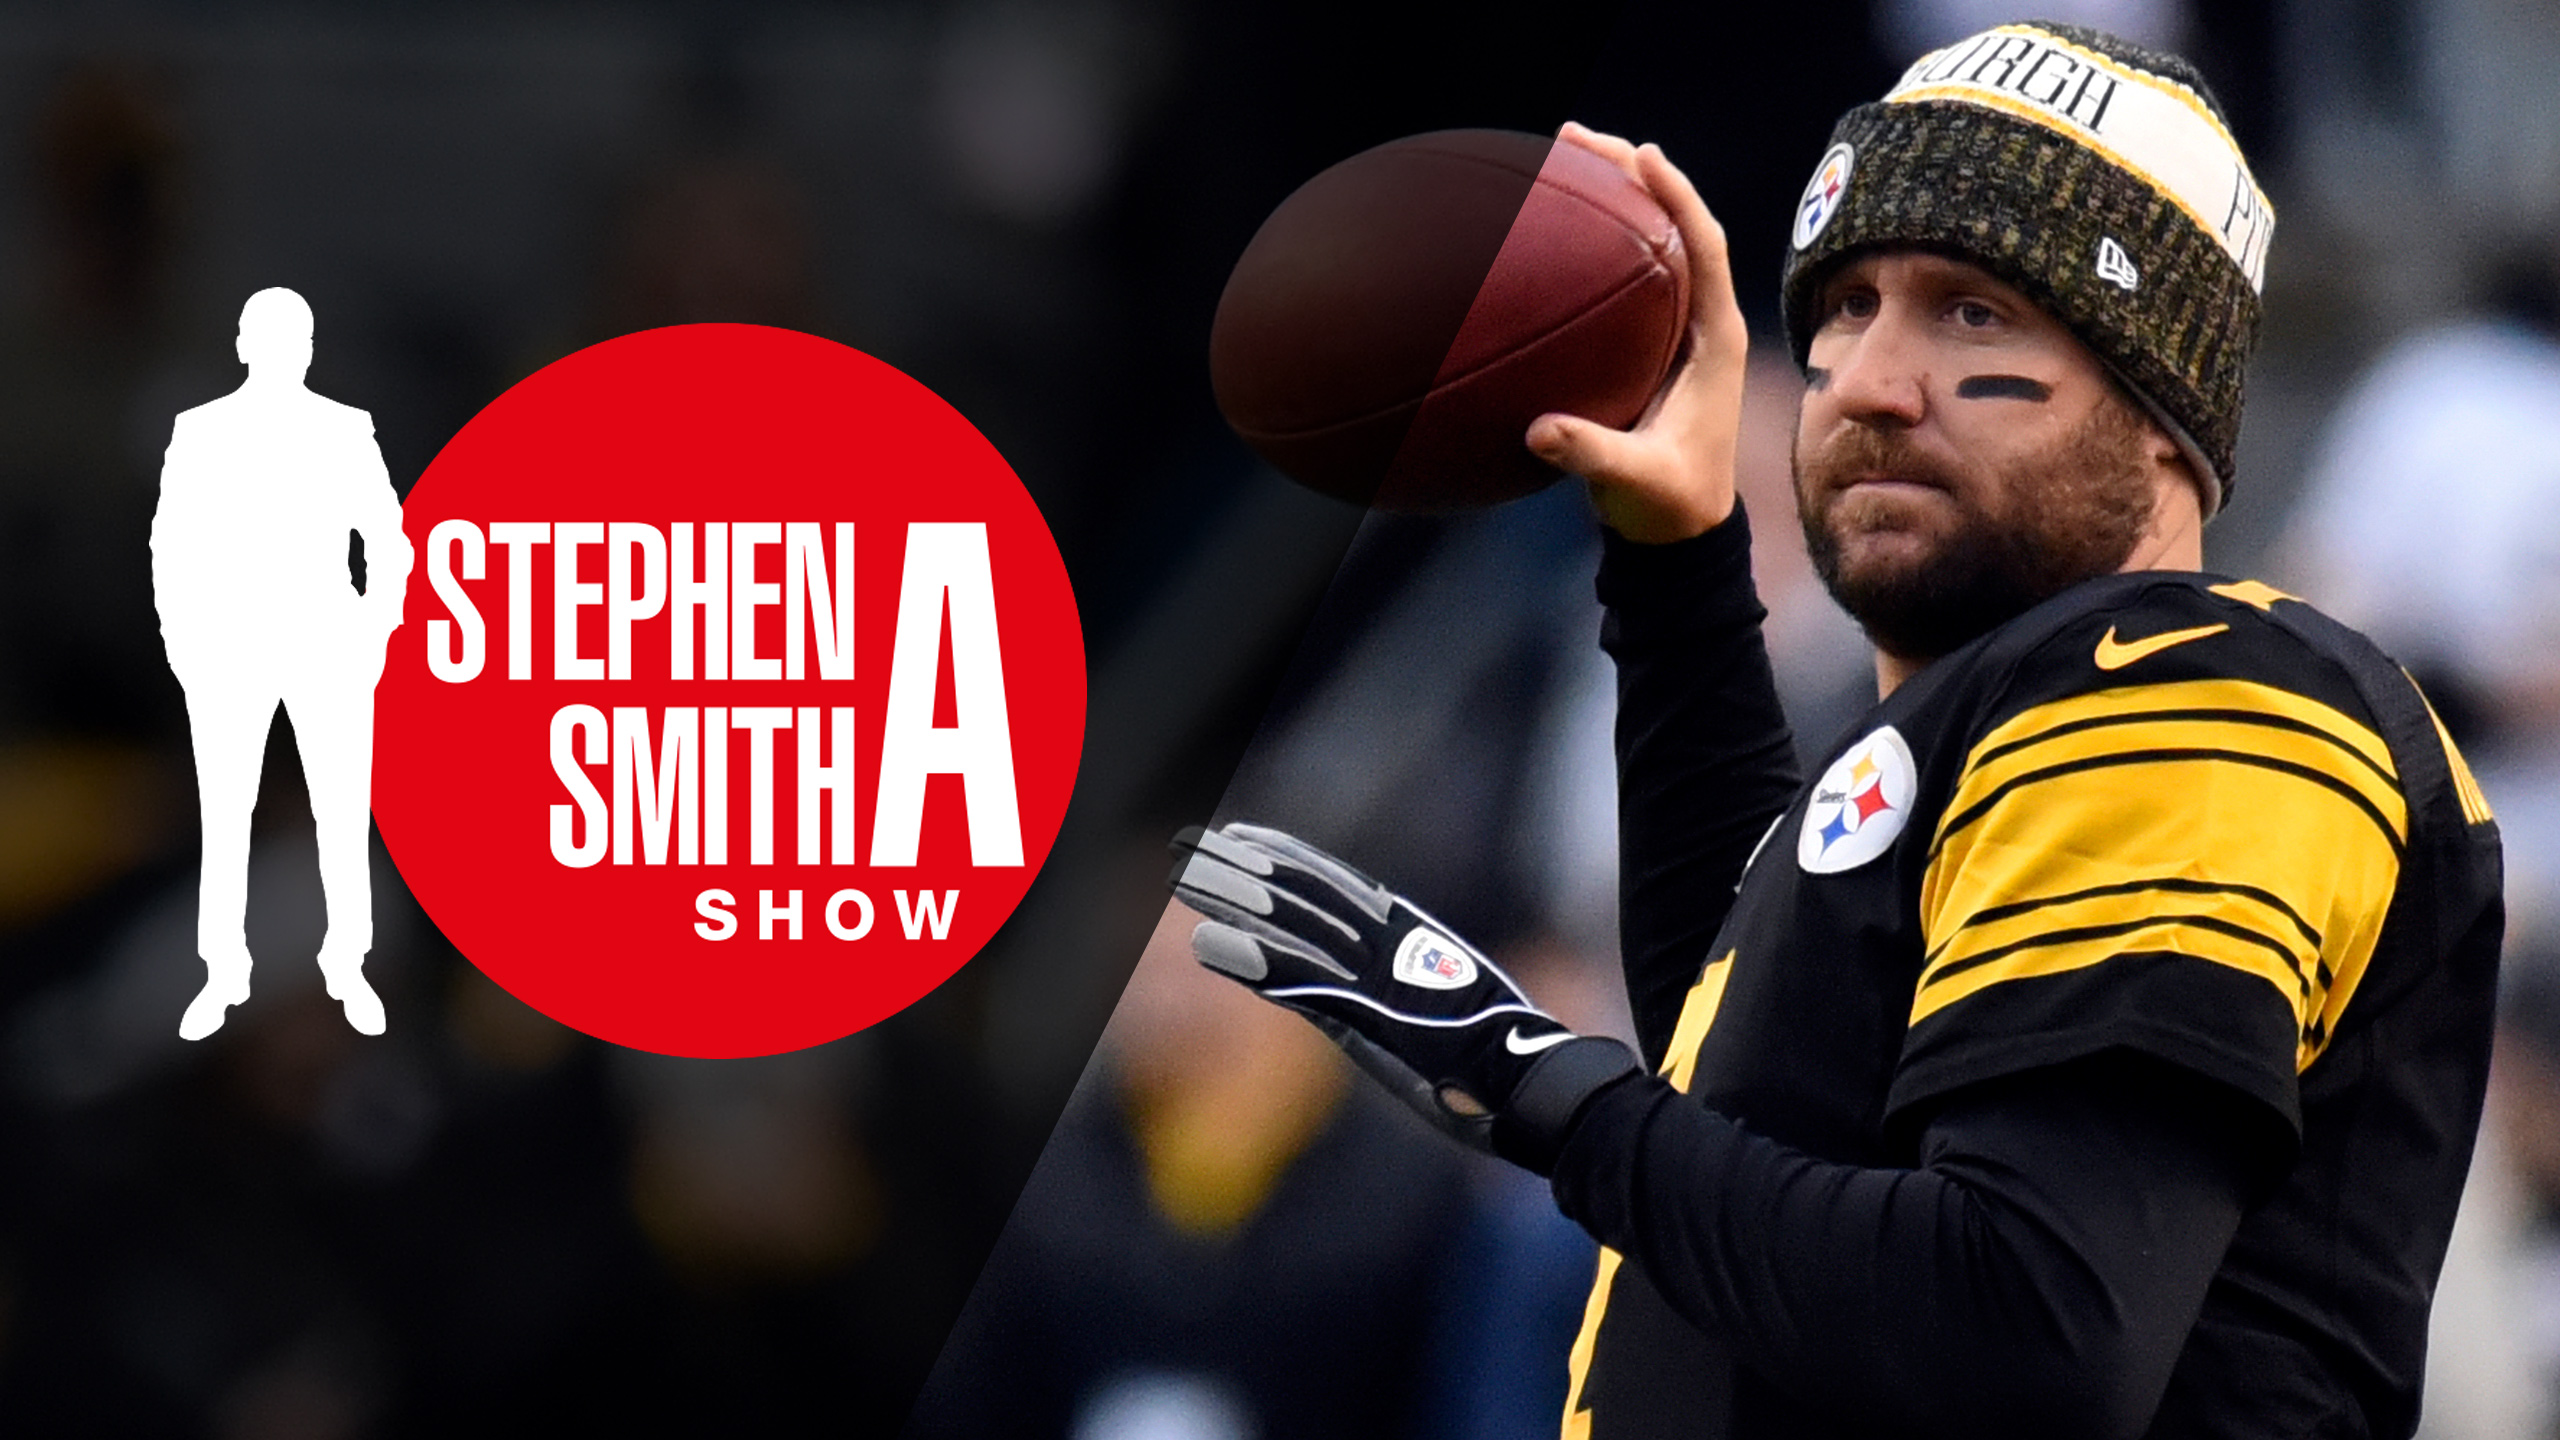 Mon, 3/18 - The Stephen A. Smith Show Presented by Progressive